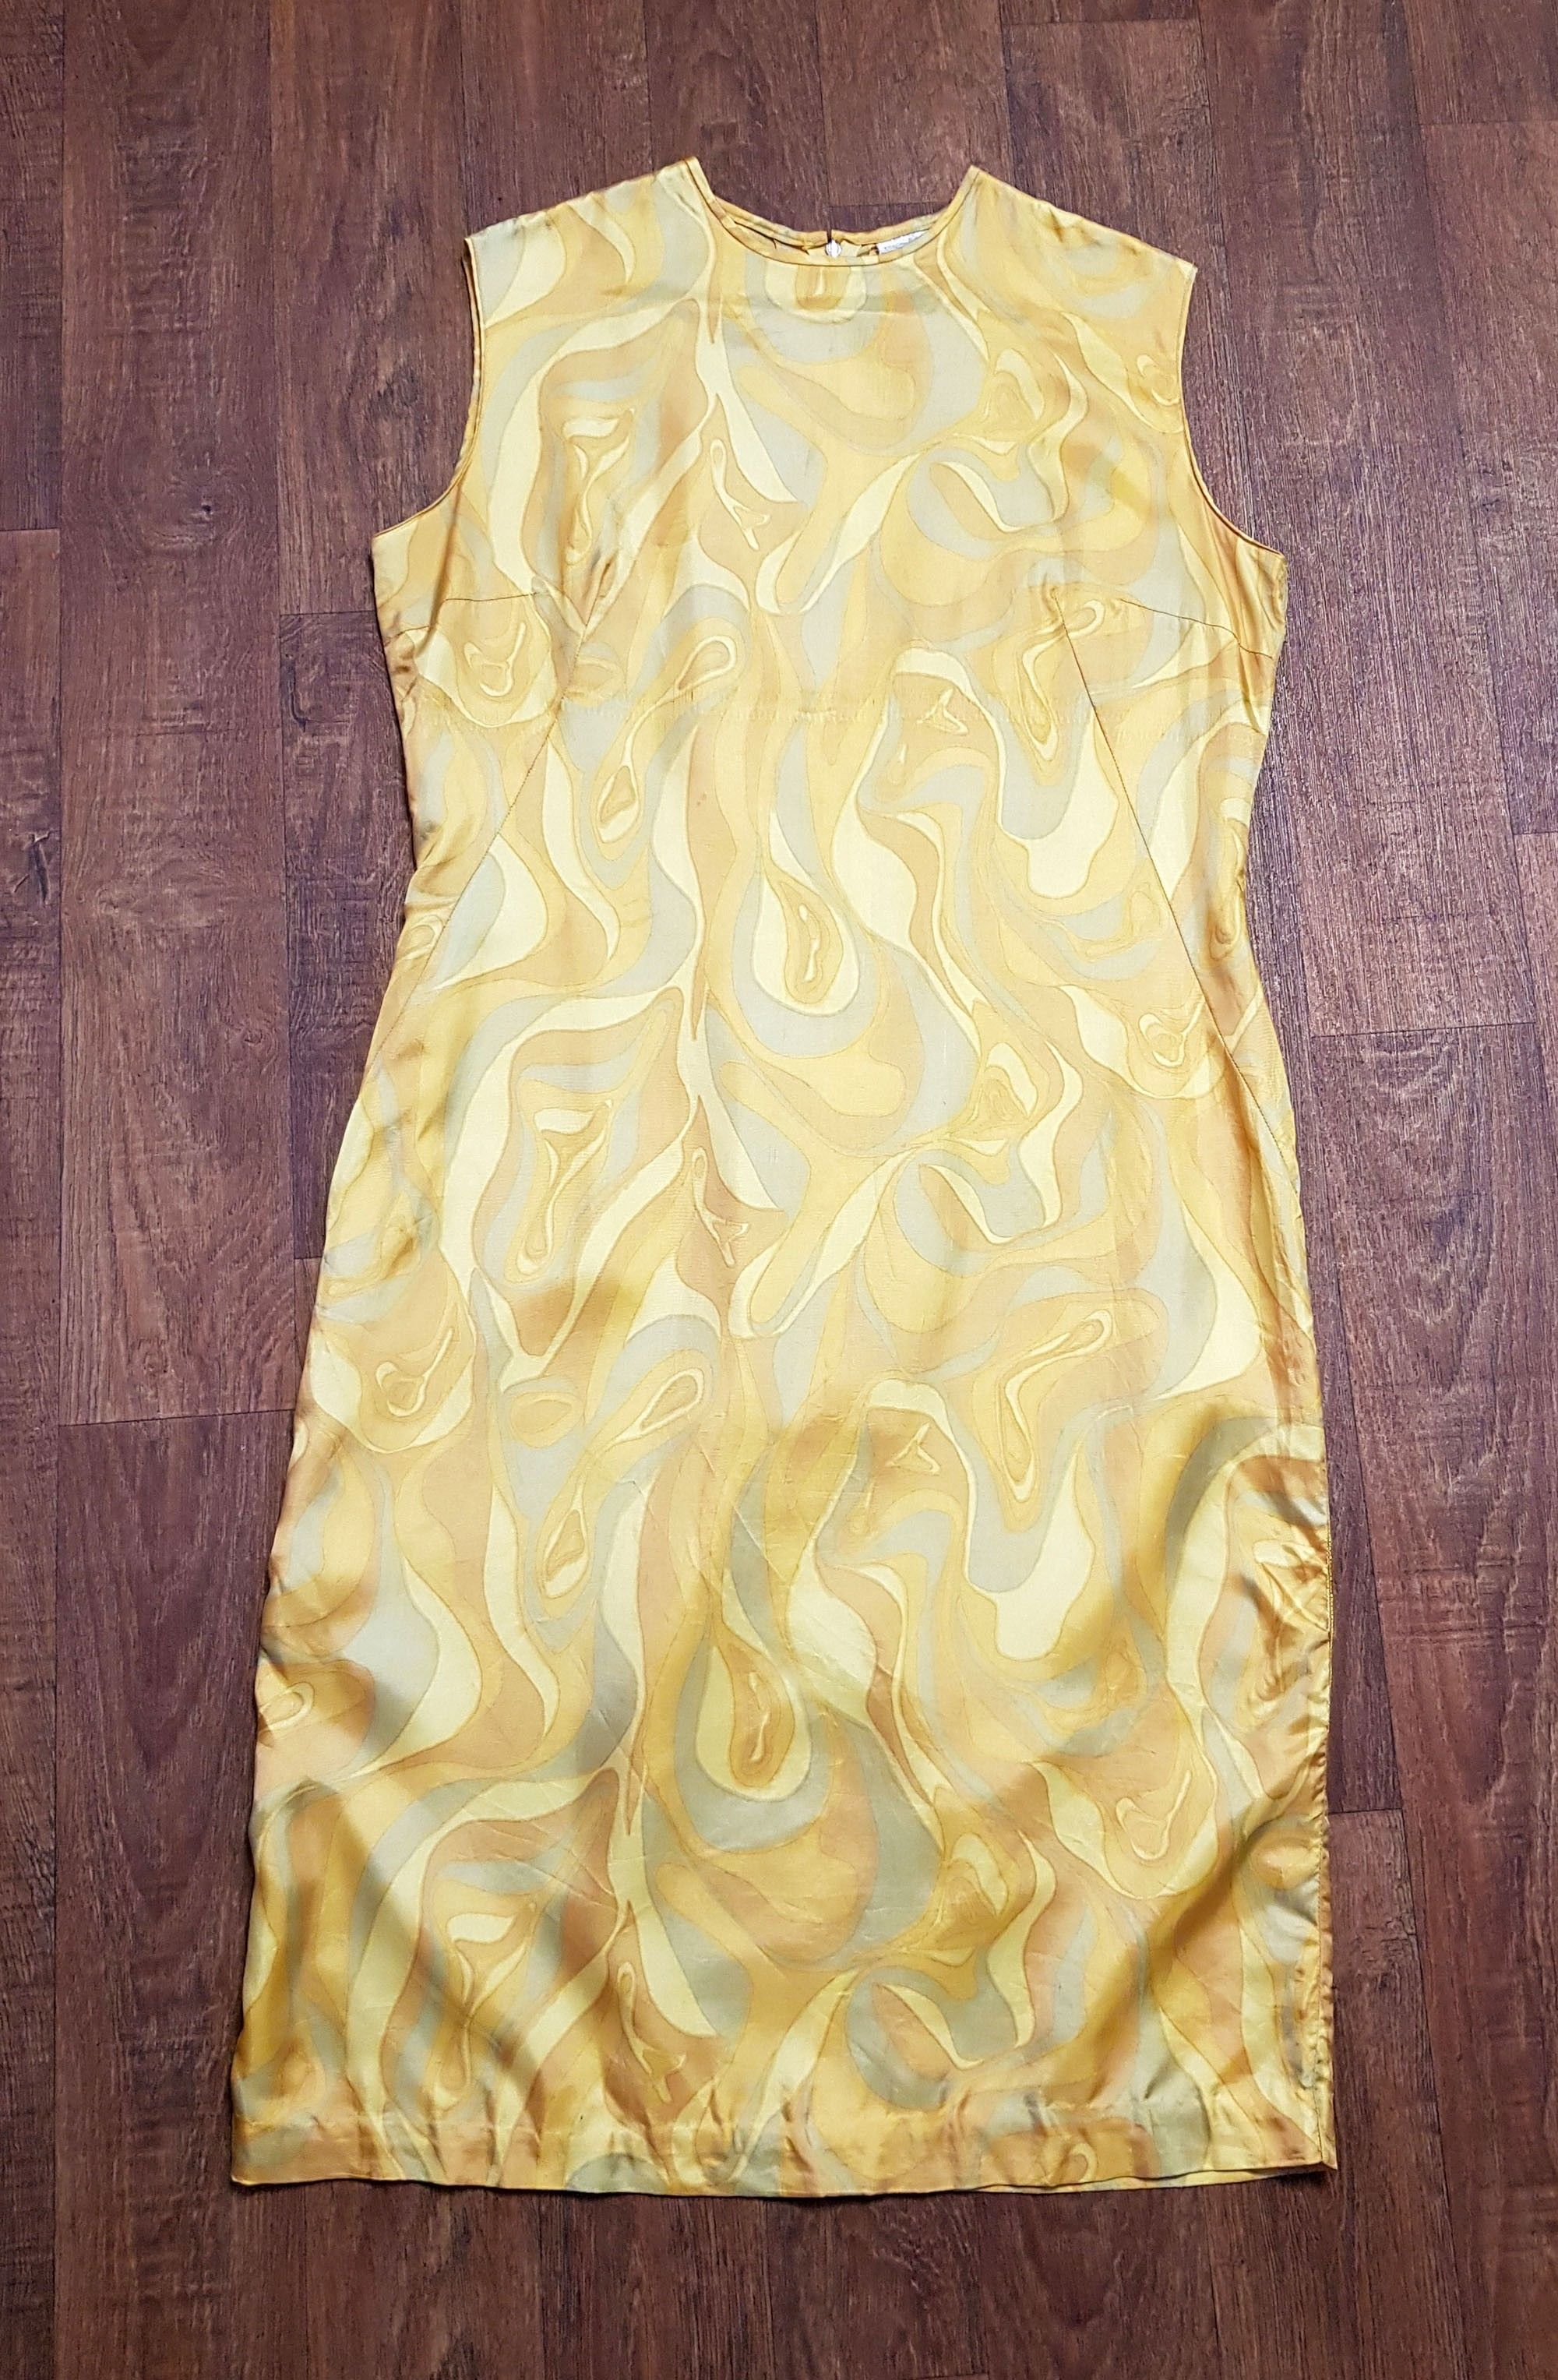 1960s Vintage Yellow Swirl Shift Dress UK Size 18